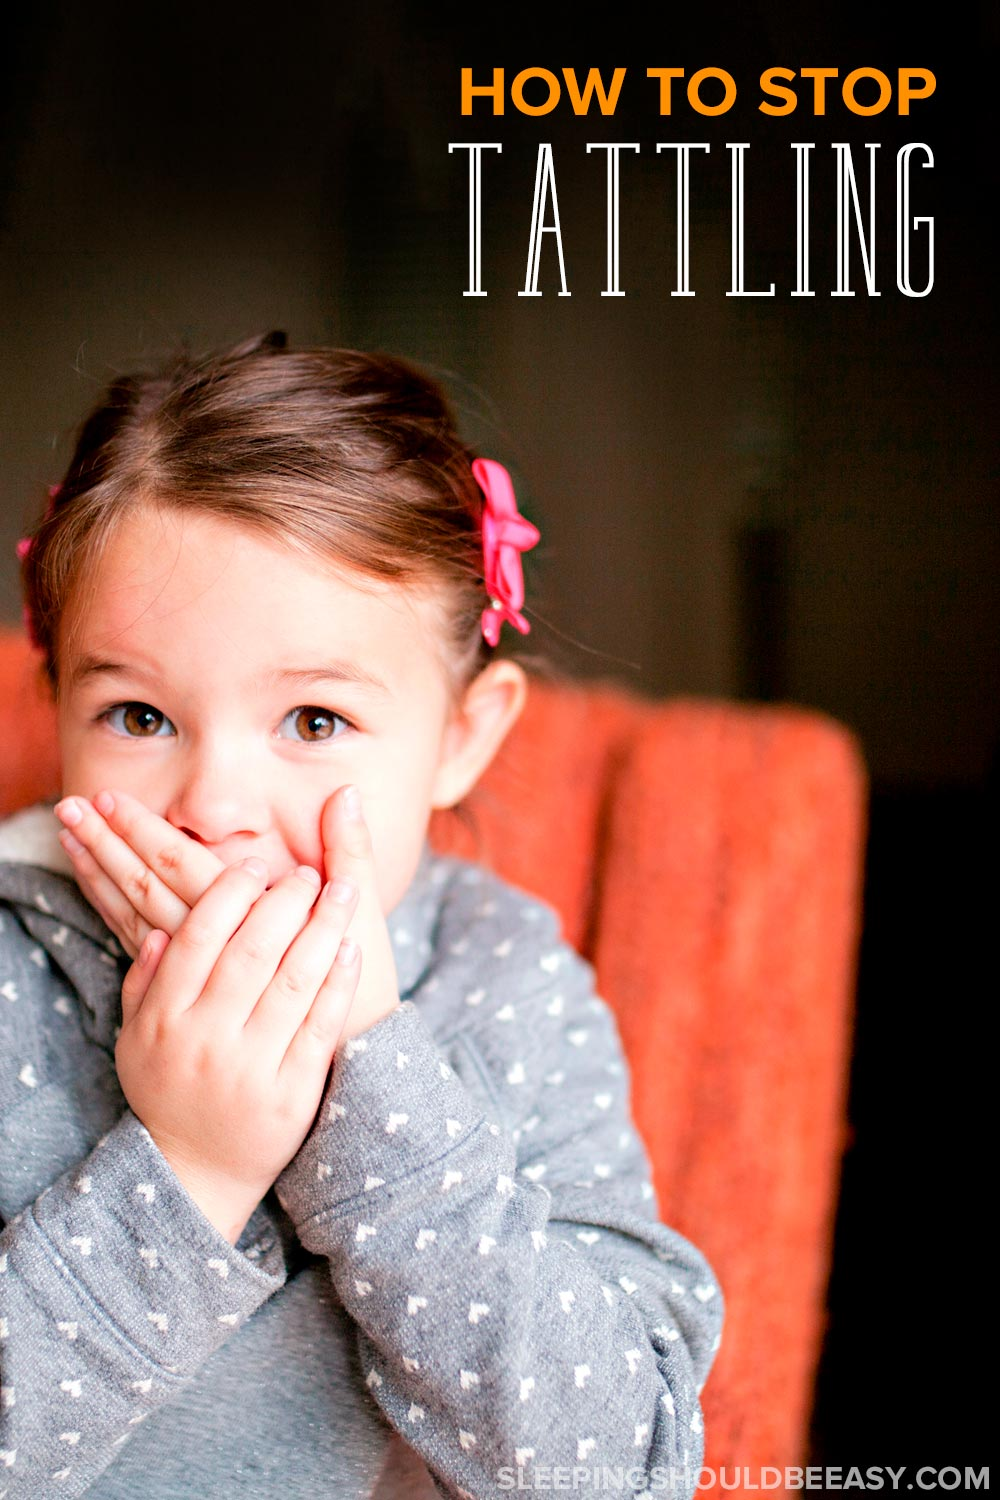 How to stop tattle telling